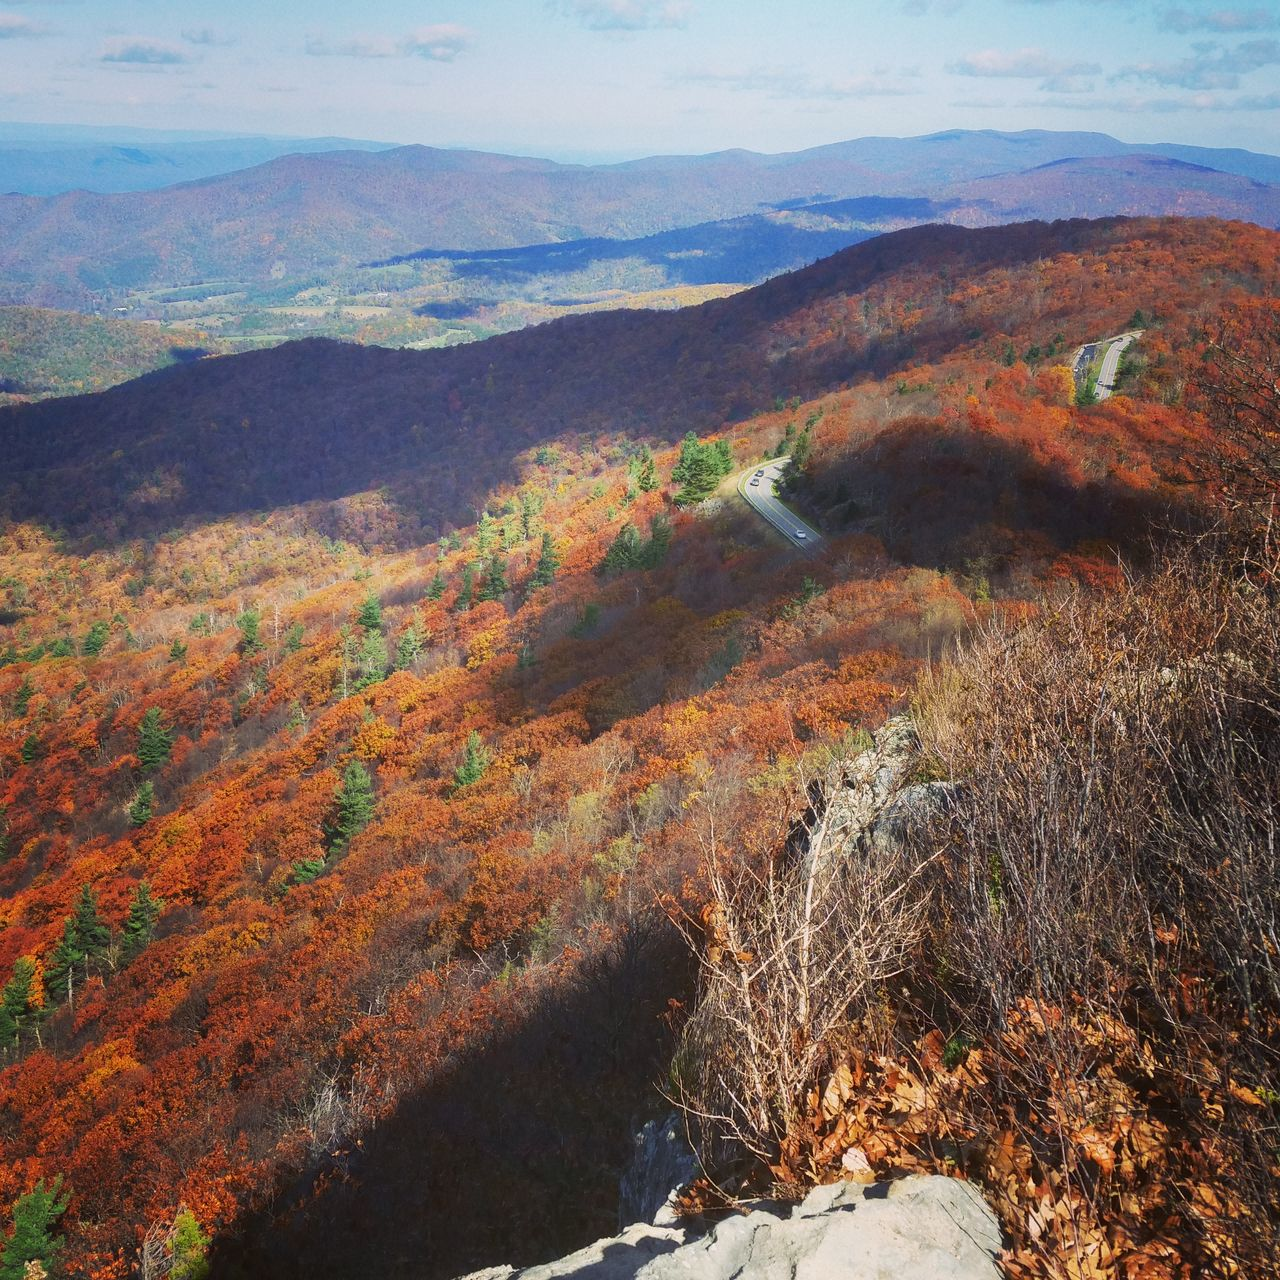 Fall Foliage Fall Leaves Shenandoah Shenandoahnationalpark Blue Ridge Mountains Travel Destinations Clouds Fall Colors Mountains Cloud - Sky Beauty In Nature Outdoors Tree Mountains